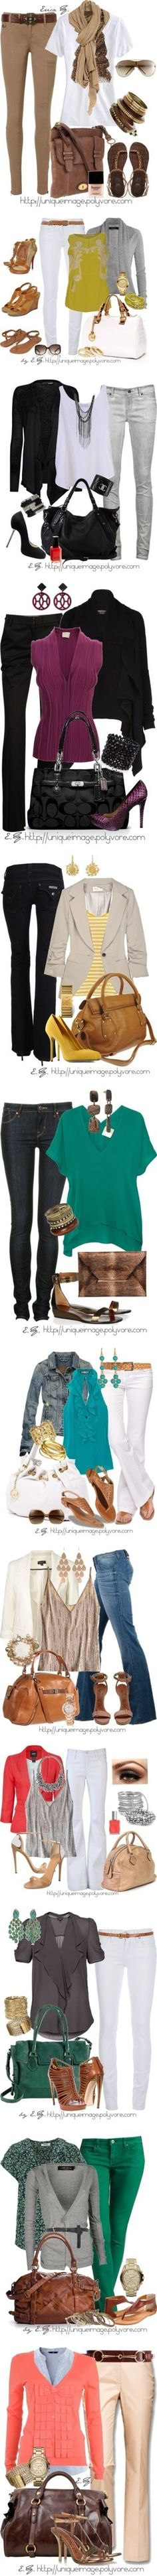 Fall clothes by tanya